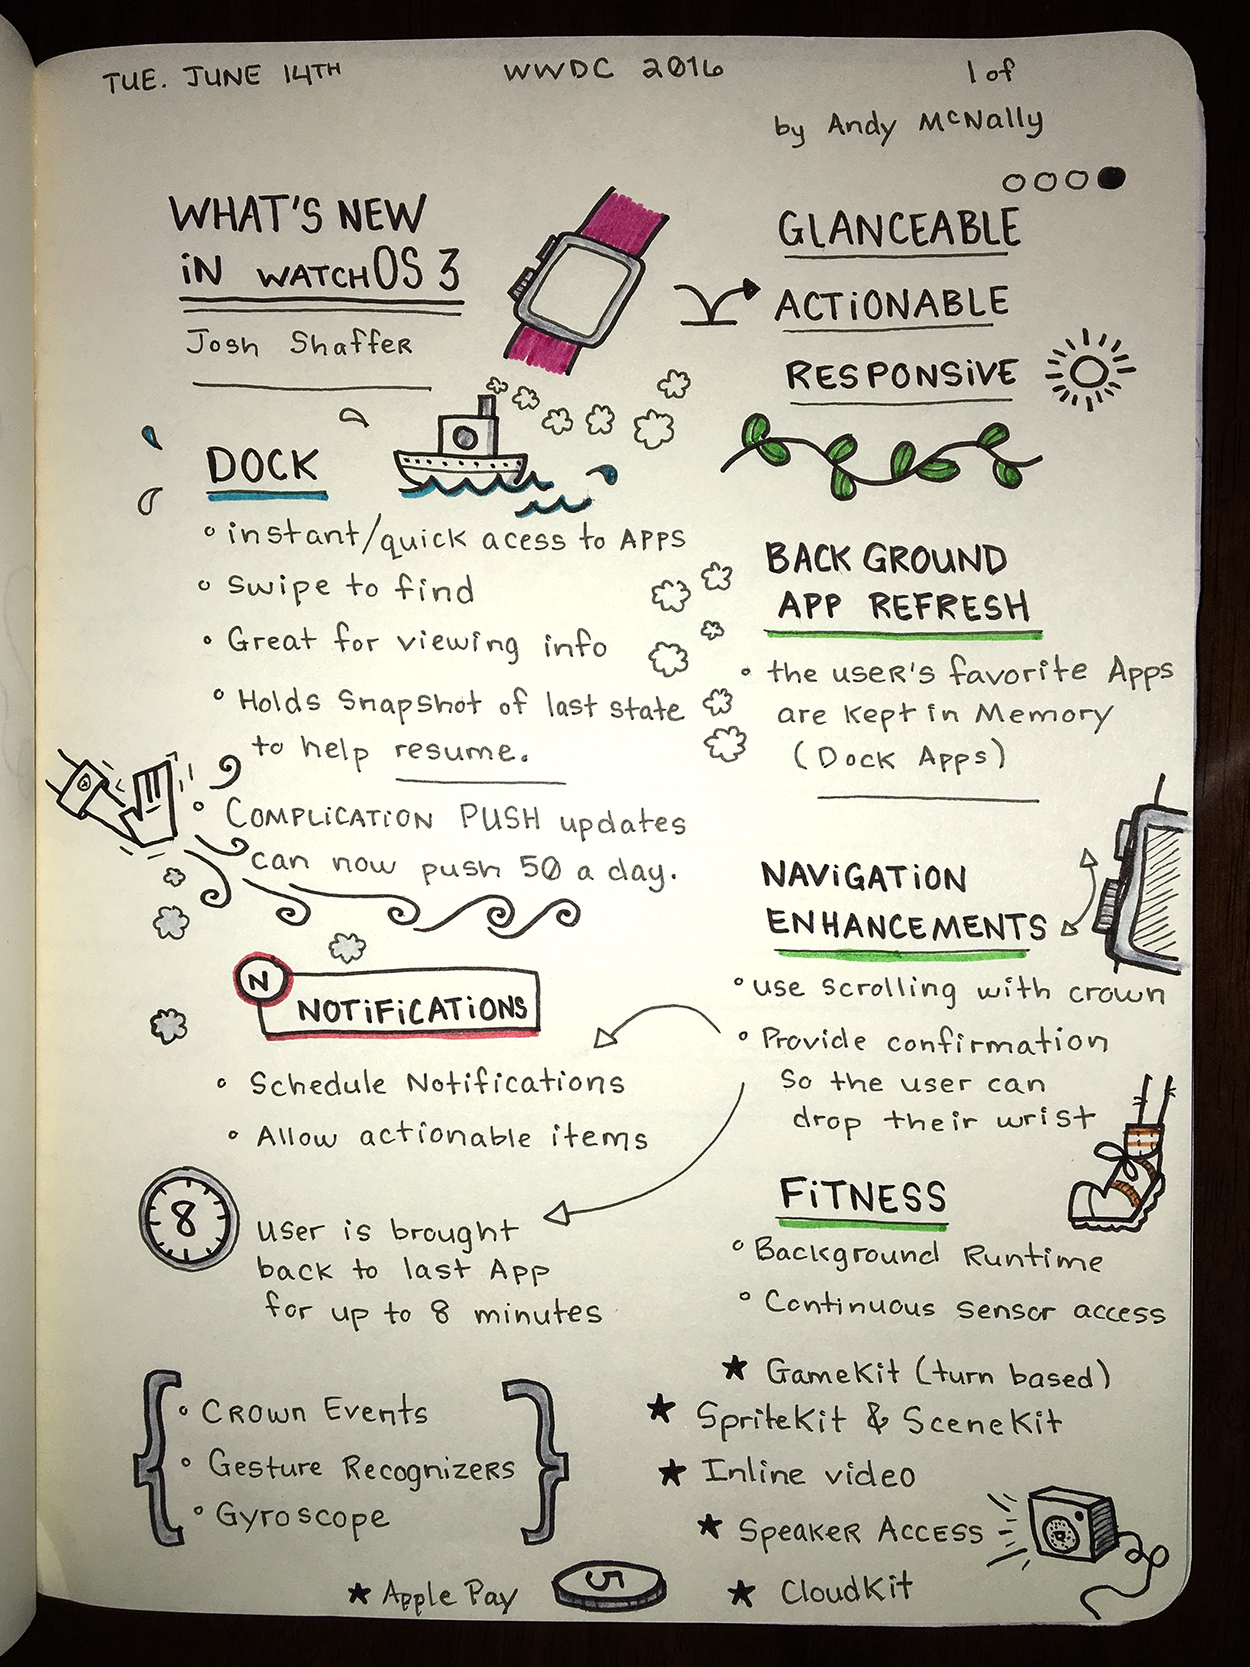 WWDC sketchnotes - What's New in watchOS